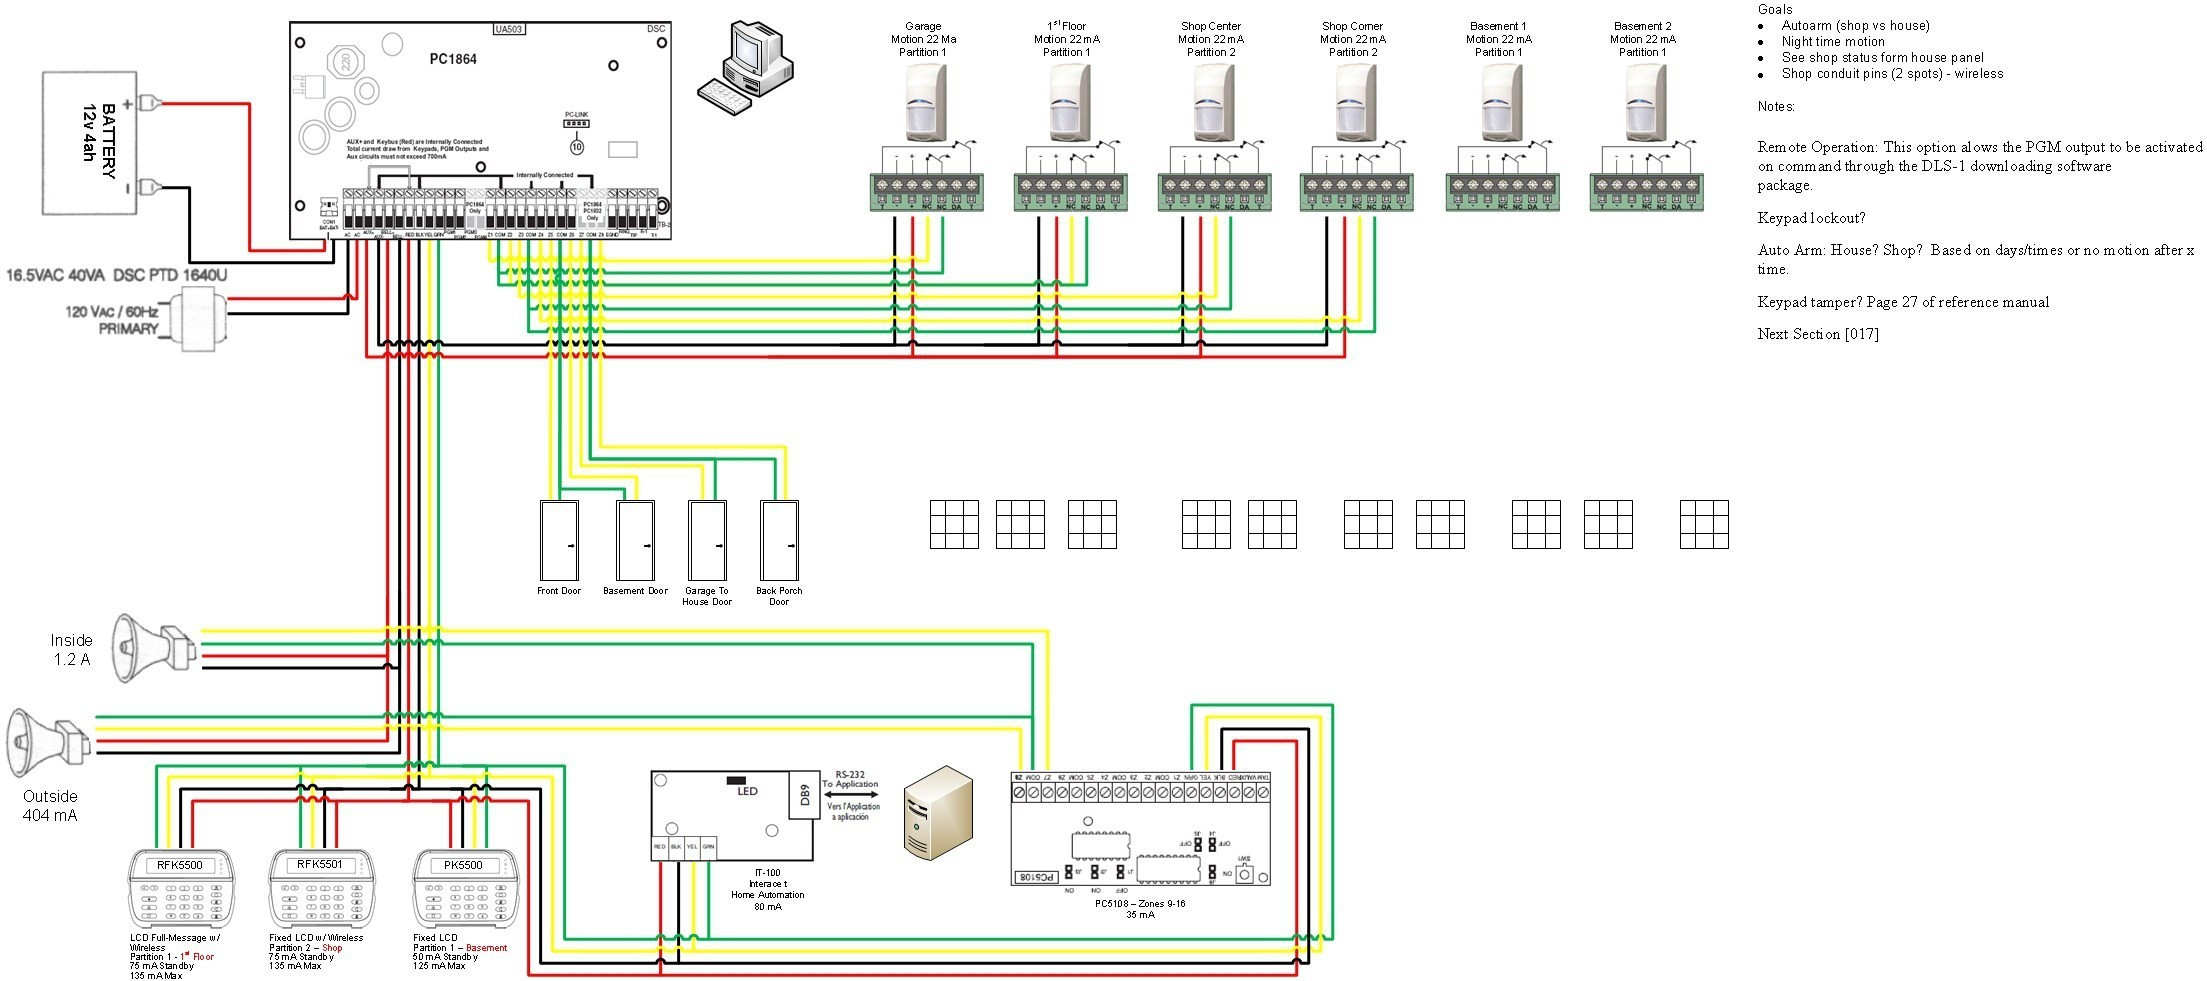 home security system wiring diagram Download-home security system wiring diagram Collection Domestic Alarm Wiring Diagram Inspirationa Wrx Alarm Wiring Diagram 4-k